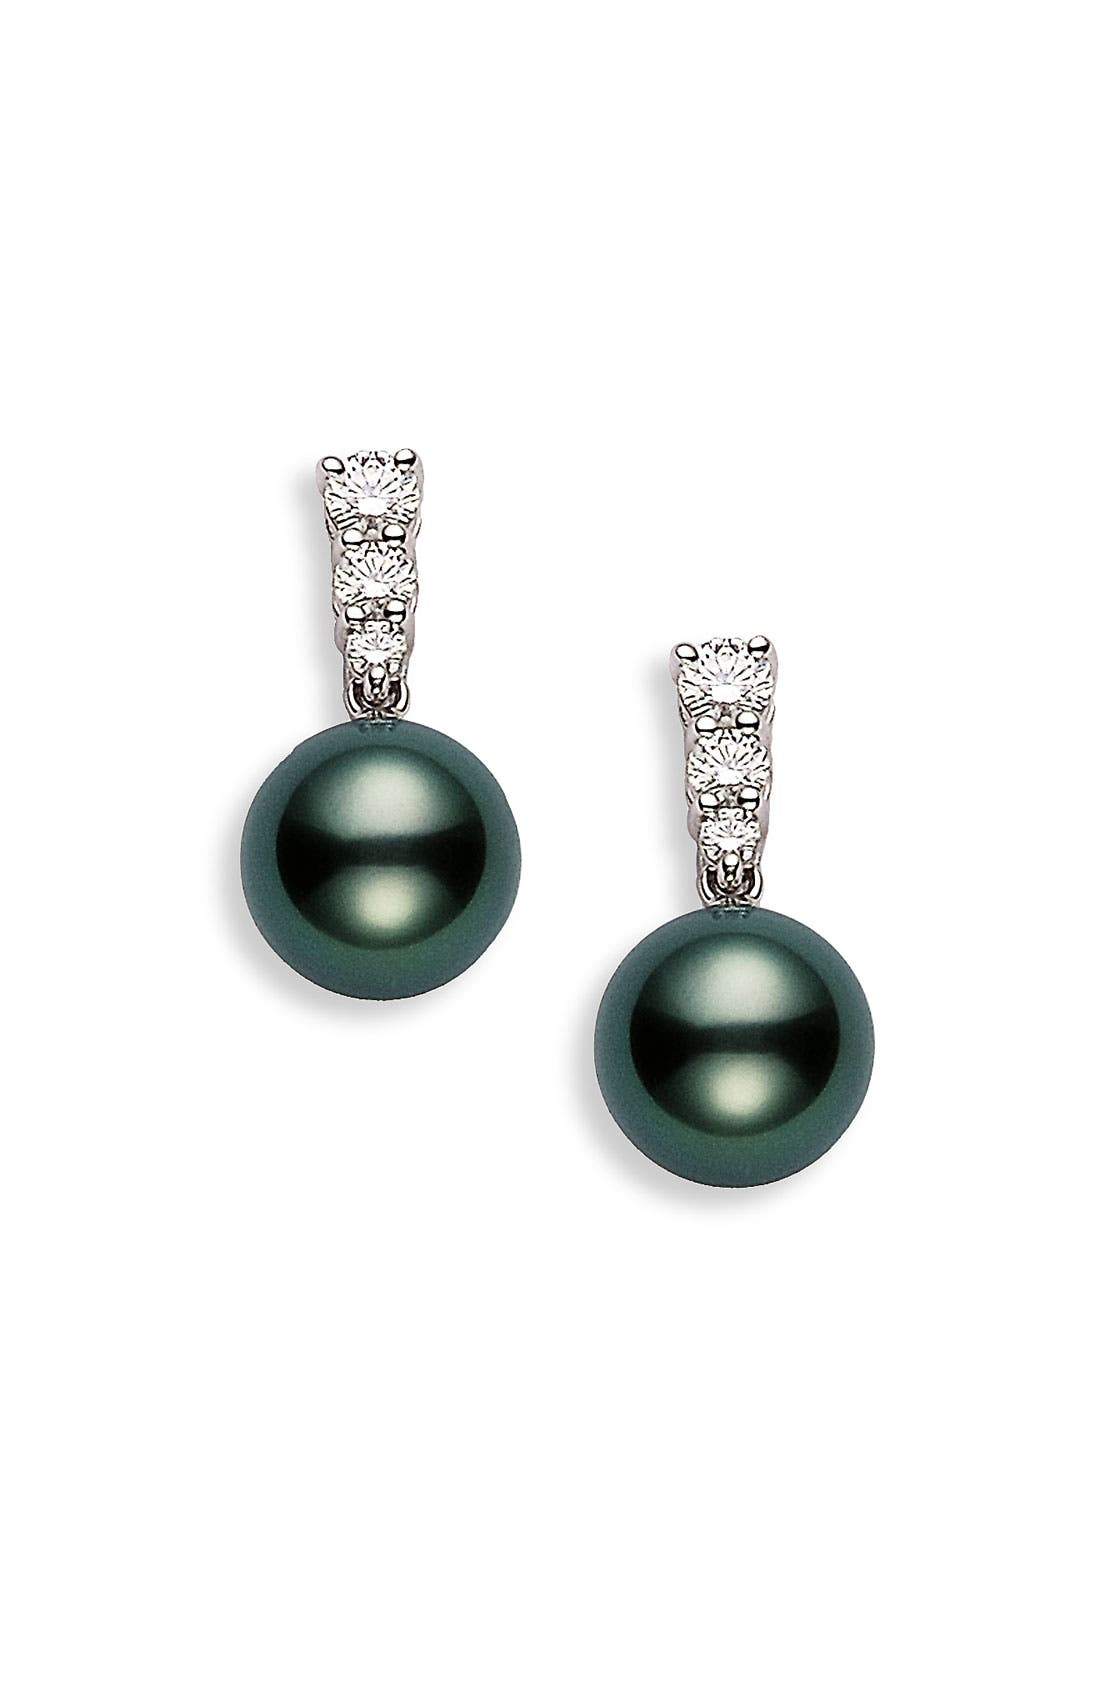 Alternate Image 1 Selected - Mikimoto 'Morning Dew' Black South Sea Cultured Pearl & Diamond Earrings